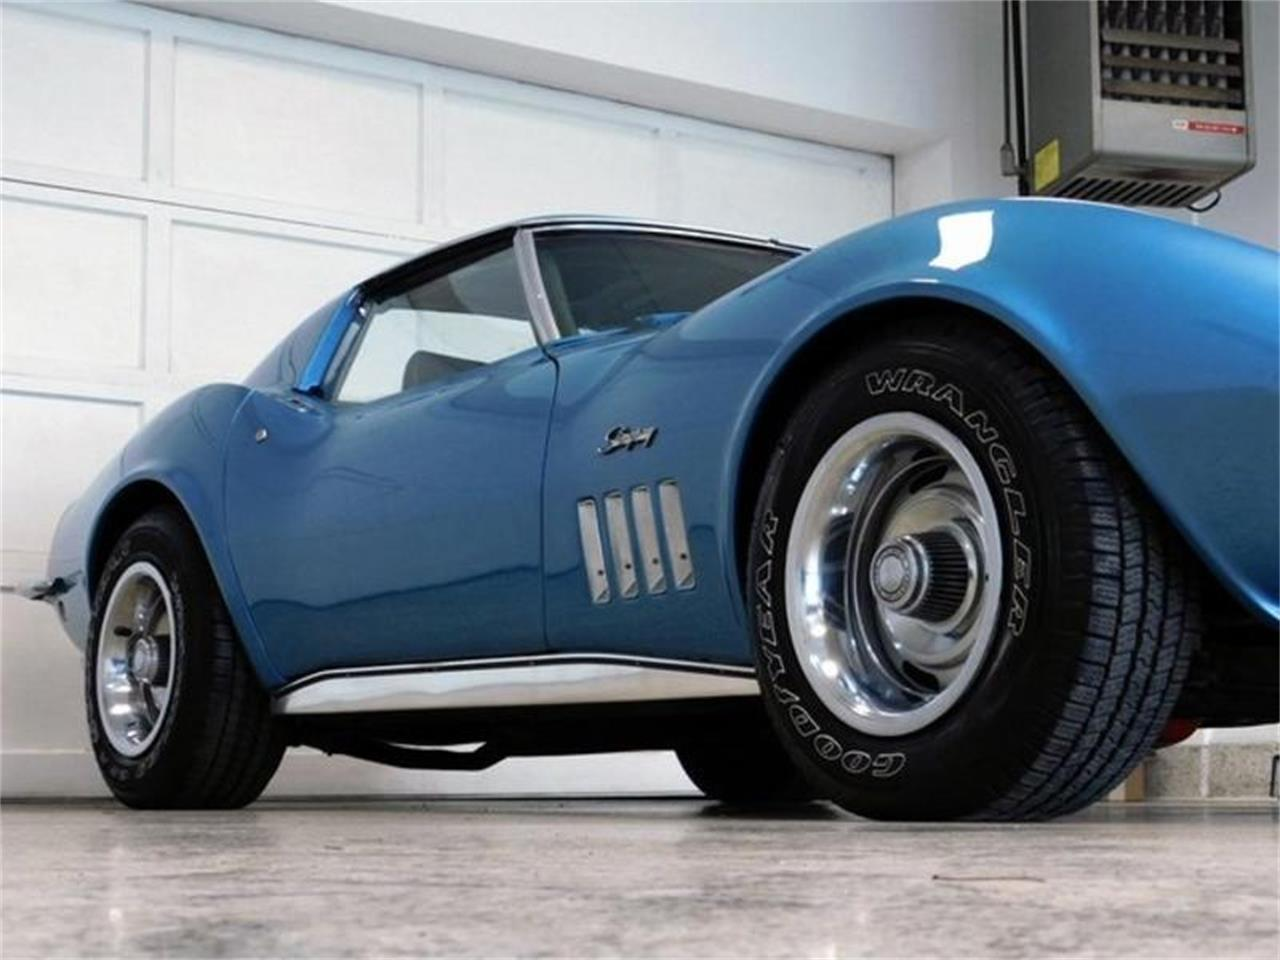 1969 Chevrolet Corvette Stingray (CC-1253528) for sale in Hamburg, New York